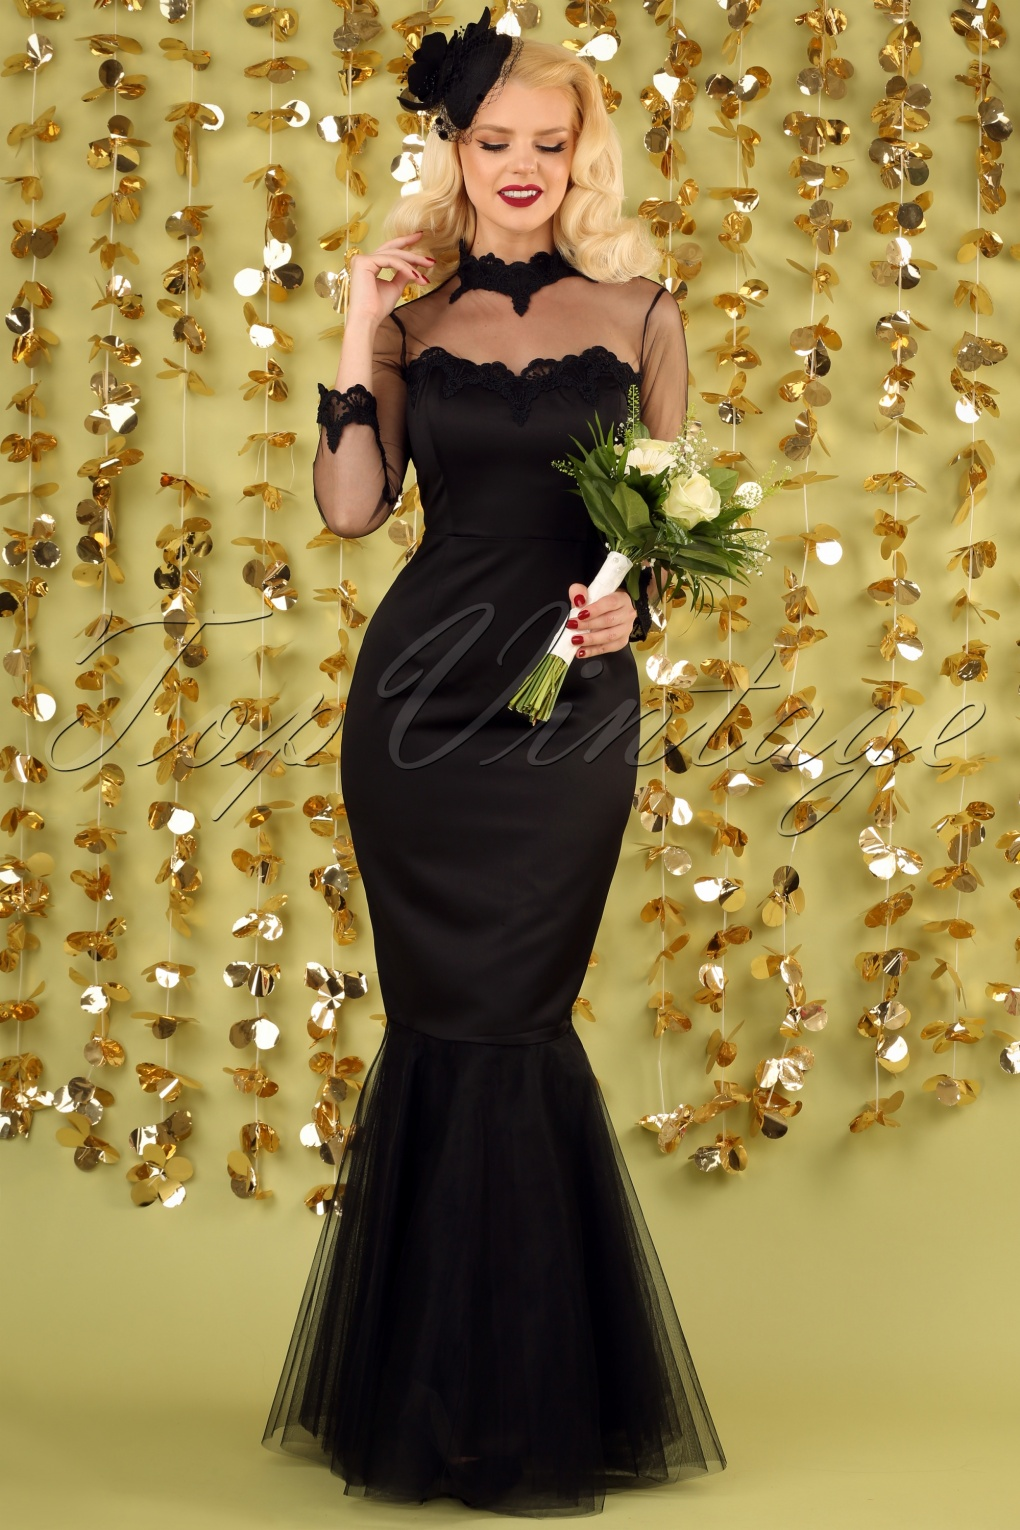 Vintage Evening Dresses and Formal Evening Gowns 50s Lucrezia Occasion Fishtail Maxi Dress in Black £77.82 AT vintagedancer.com